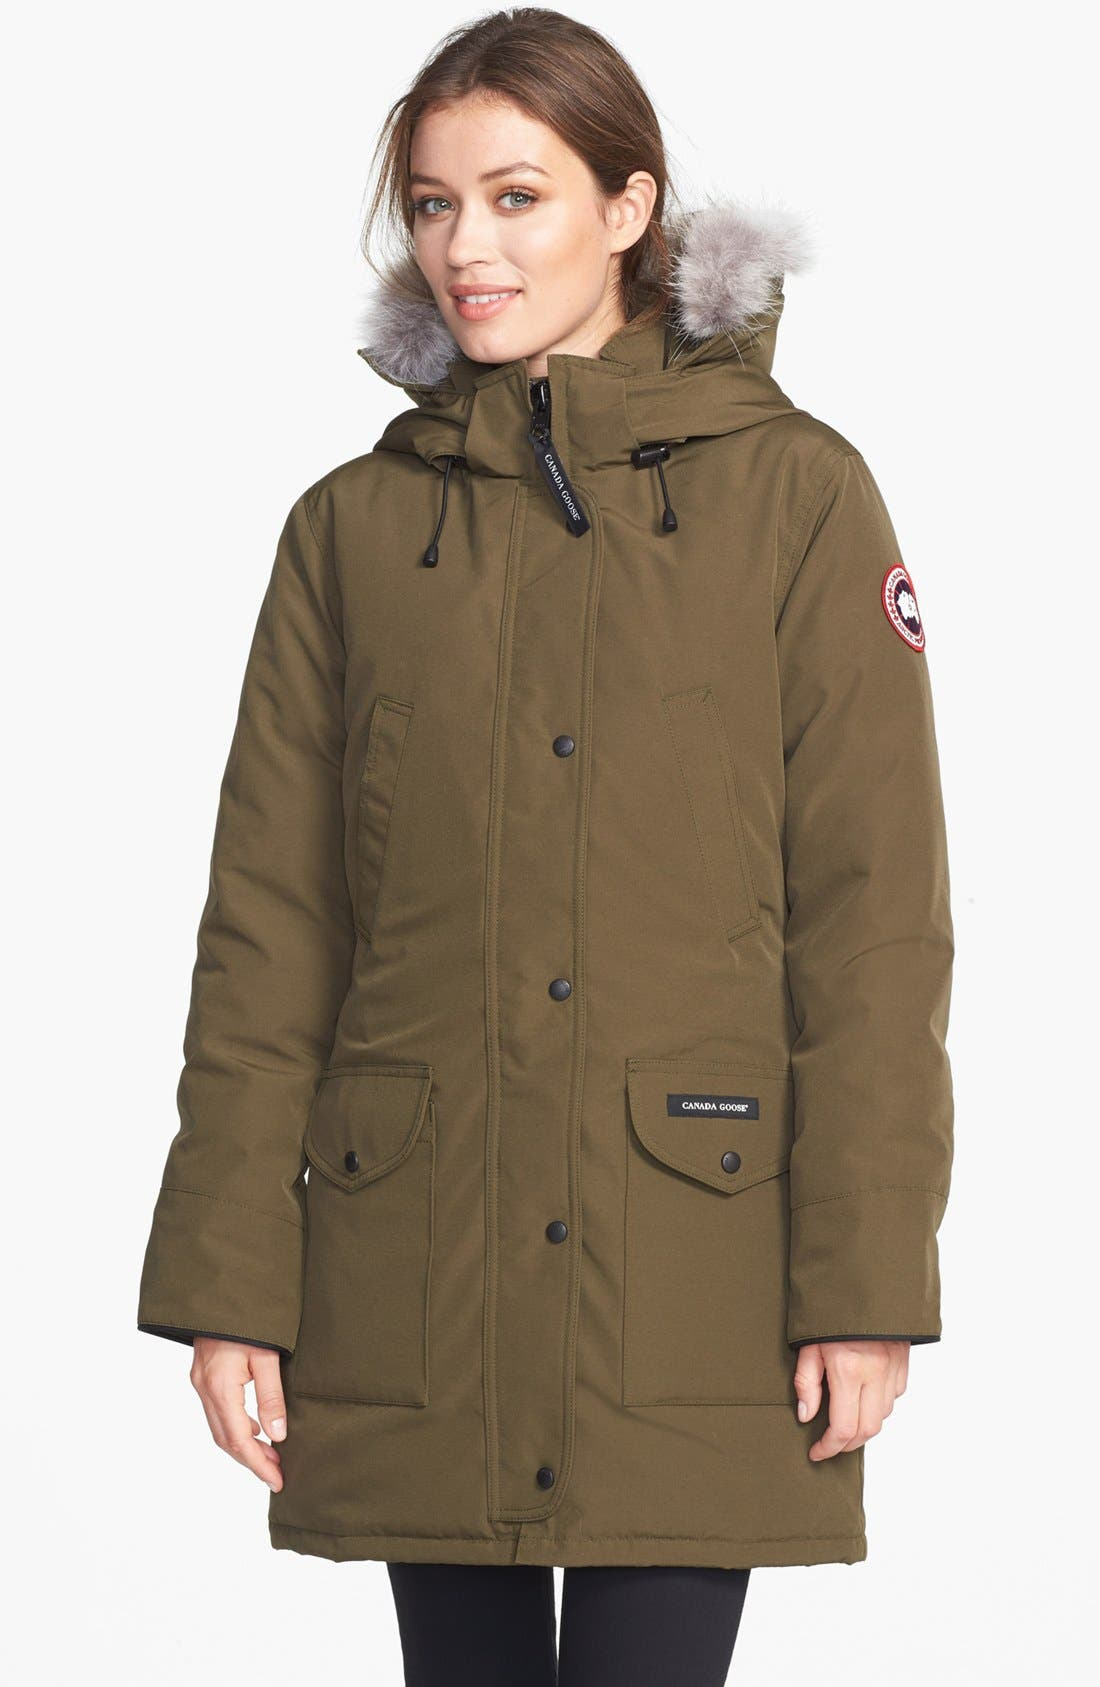 Canada Goose 'Trillium' Regular Fit Down Parka with Genuine Coyote Fur Trim